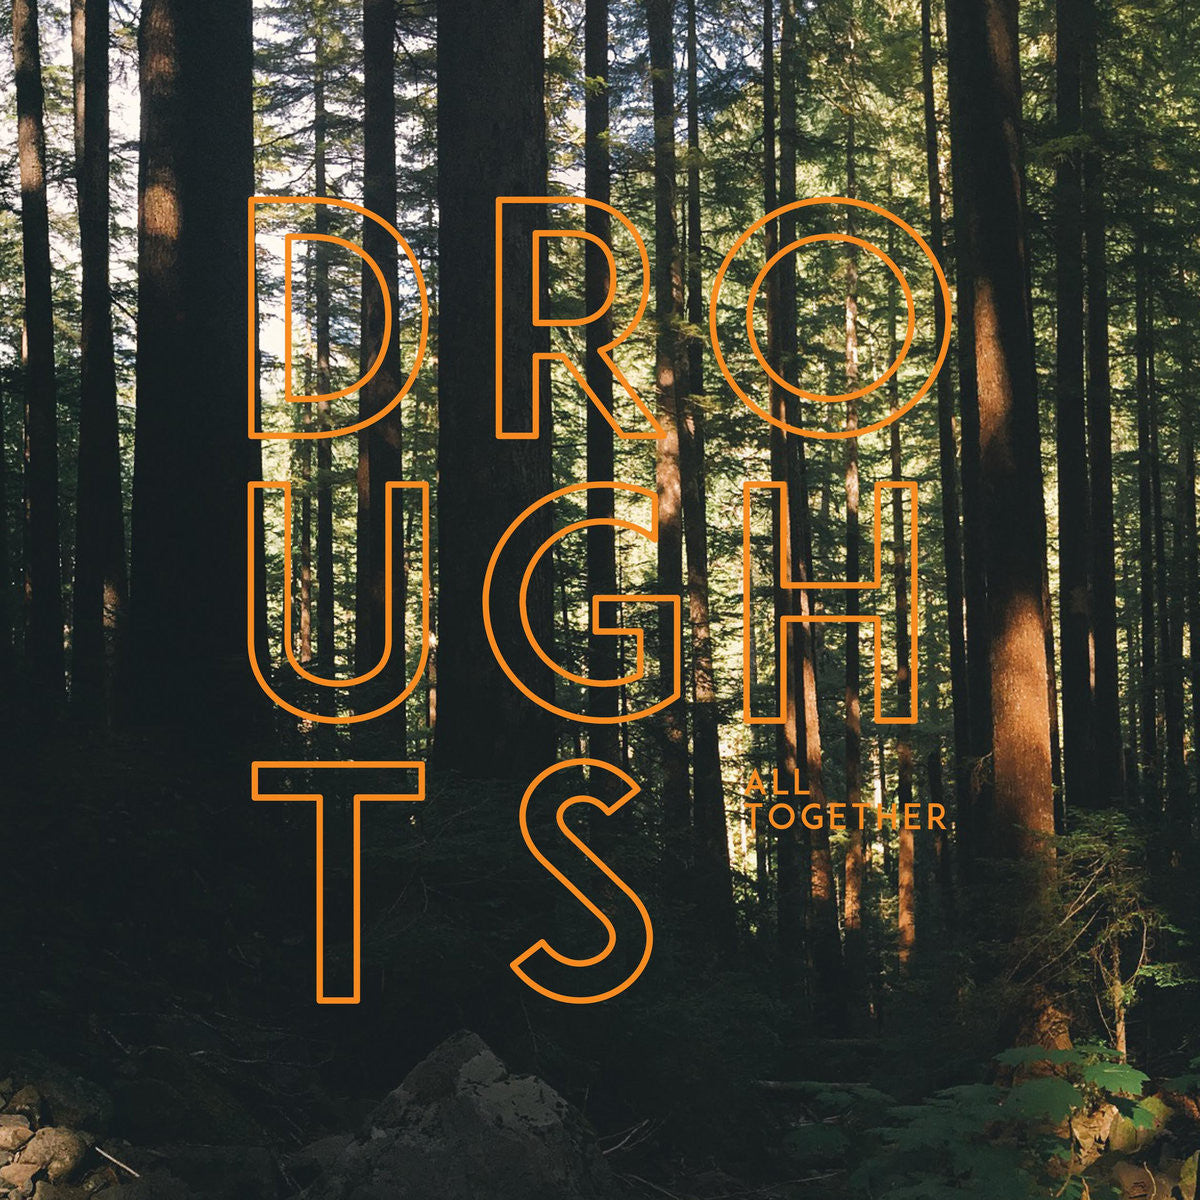 Droughts - All Together